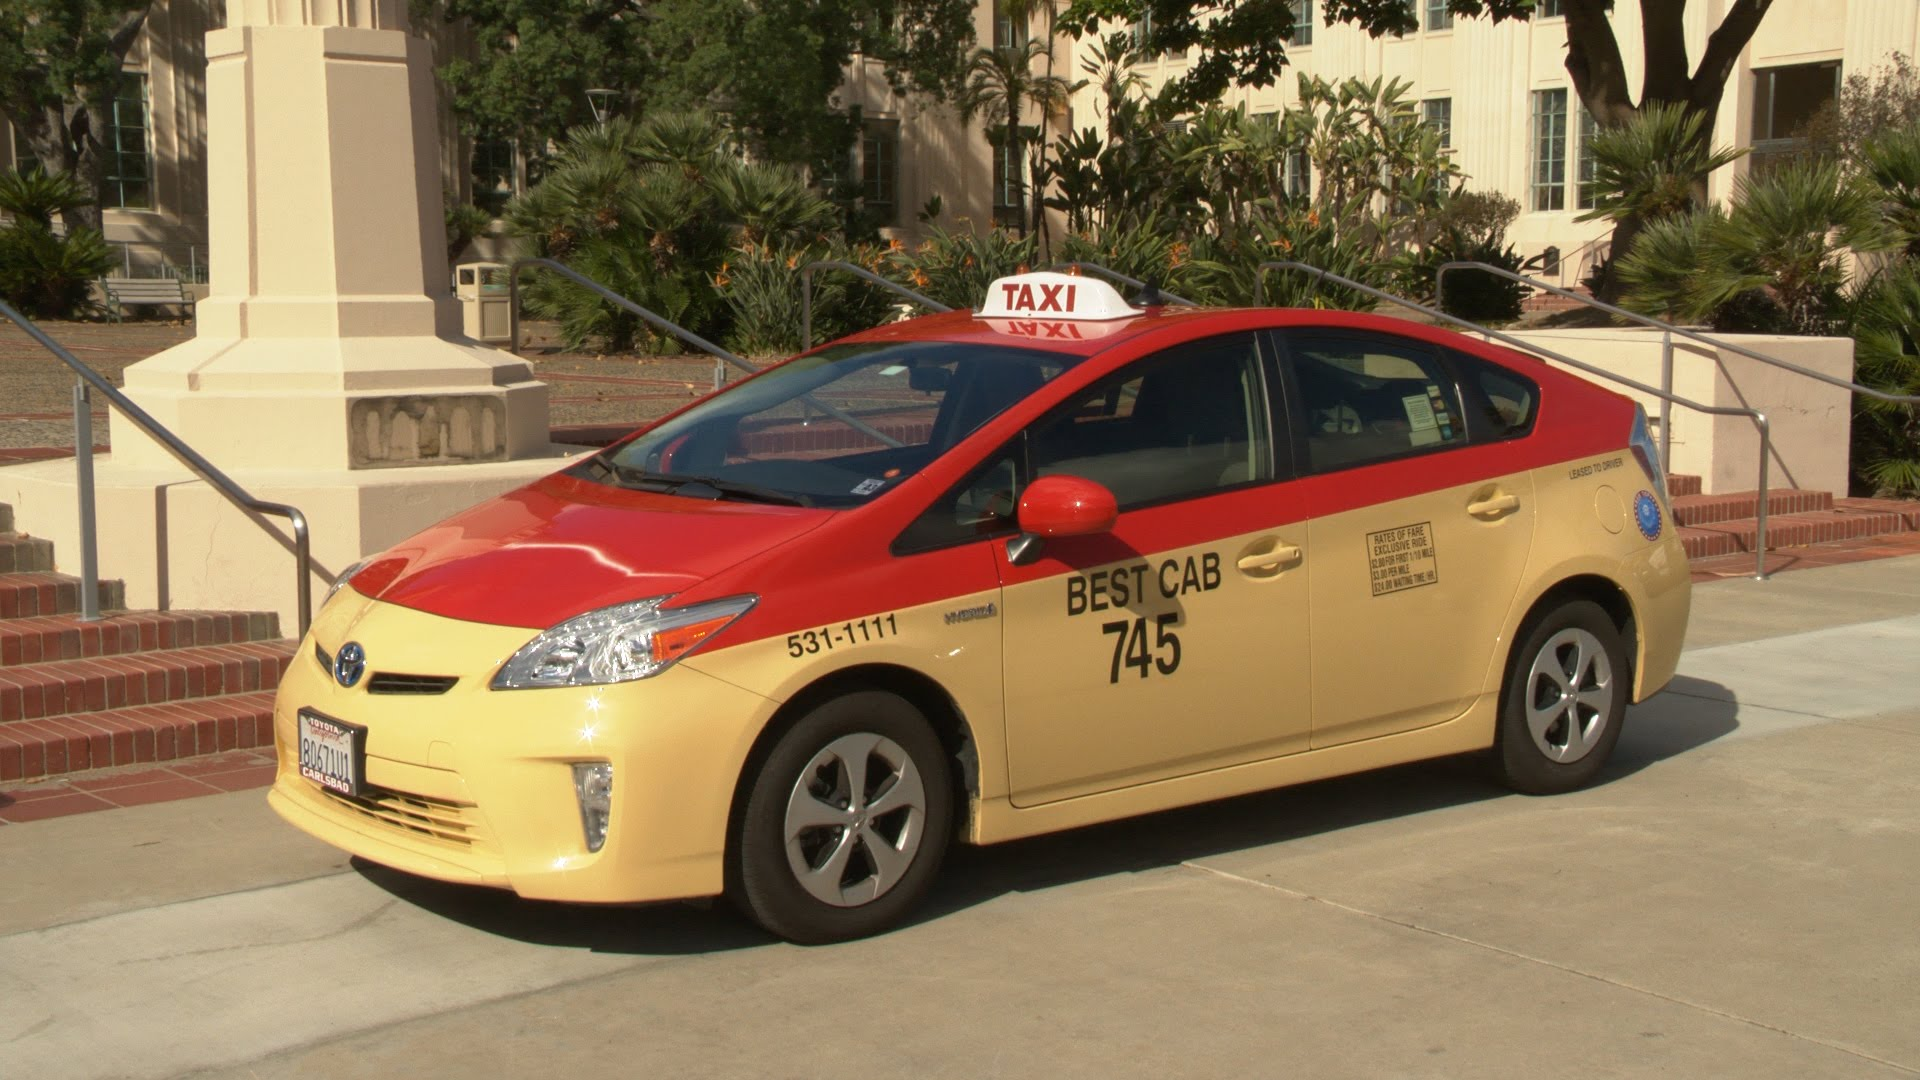 Newer Taxis for Cleaner Air